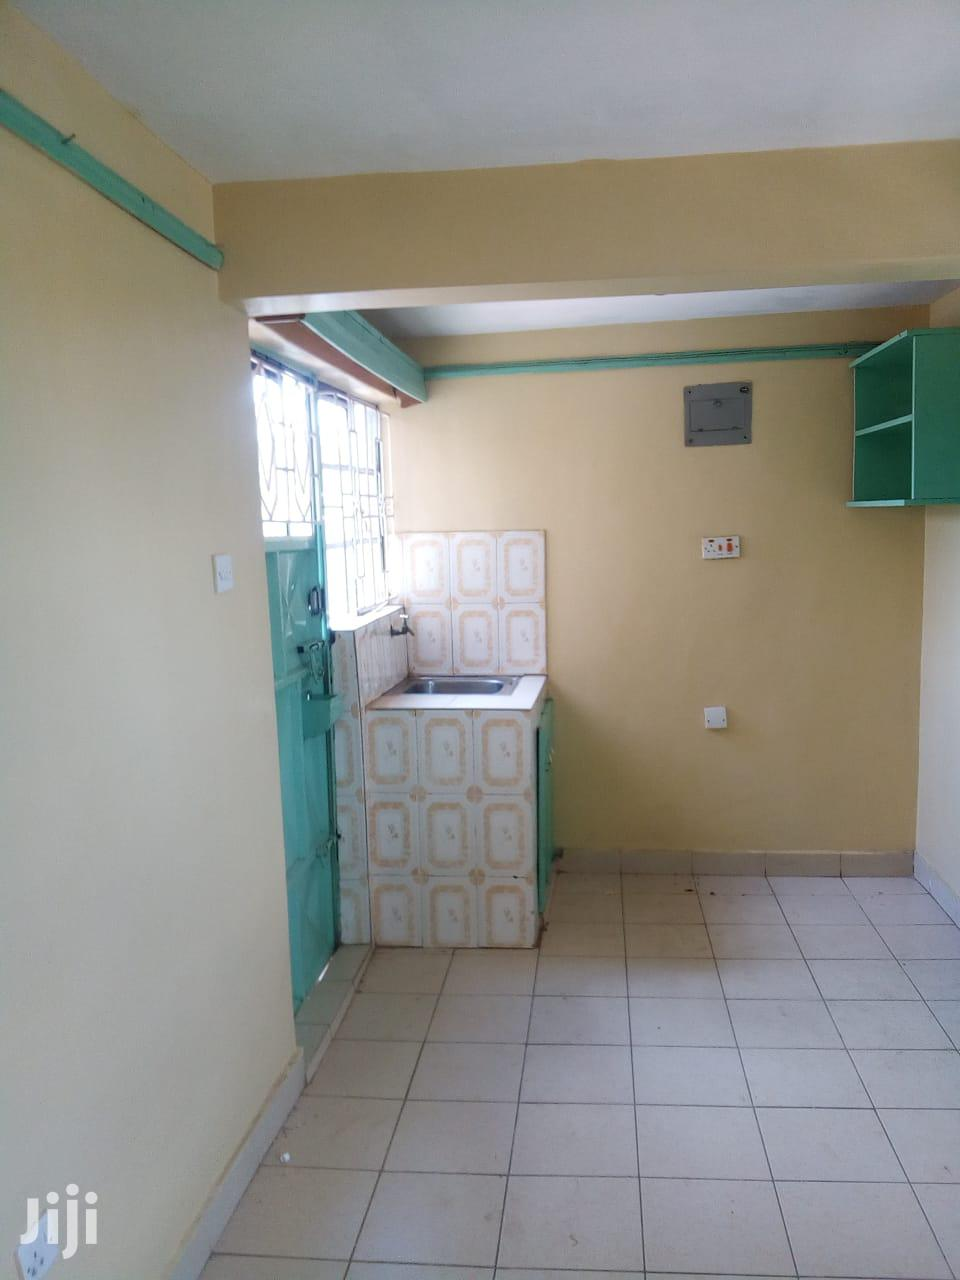 Bedsitter to Let at Kahawa West- Kmiti Junction at 6,500/- | Houses & Apartments For Rent for sale in Kahawa West, Nairobi, Kenya